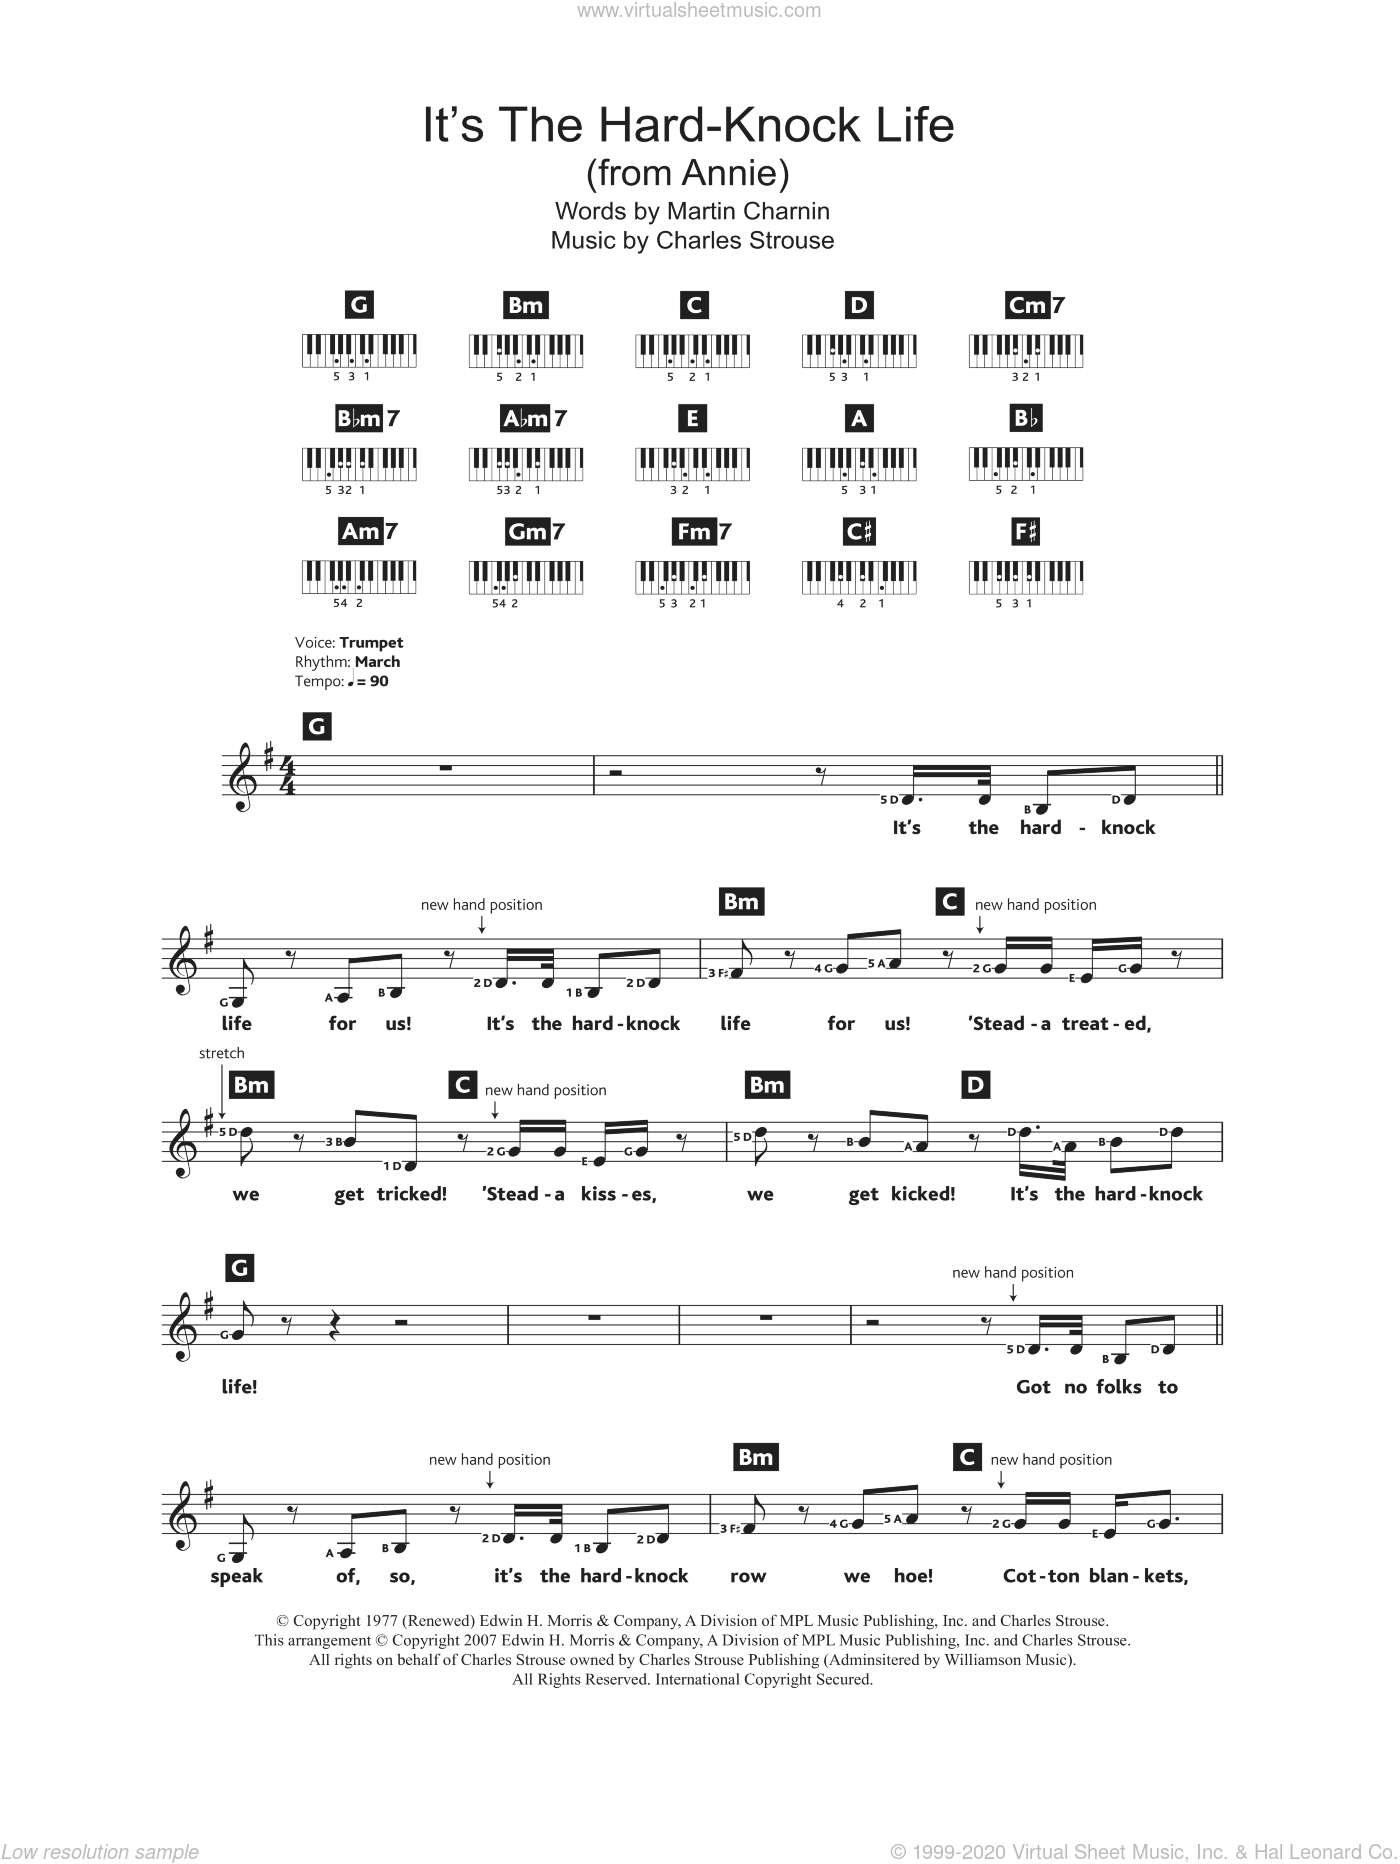 Strouse - It's The Hard-Knock Life (from Annie) sheet music (intermediate)  for piano solo (chords, lyrics, melody)